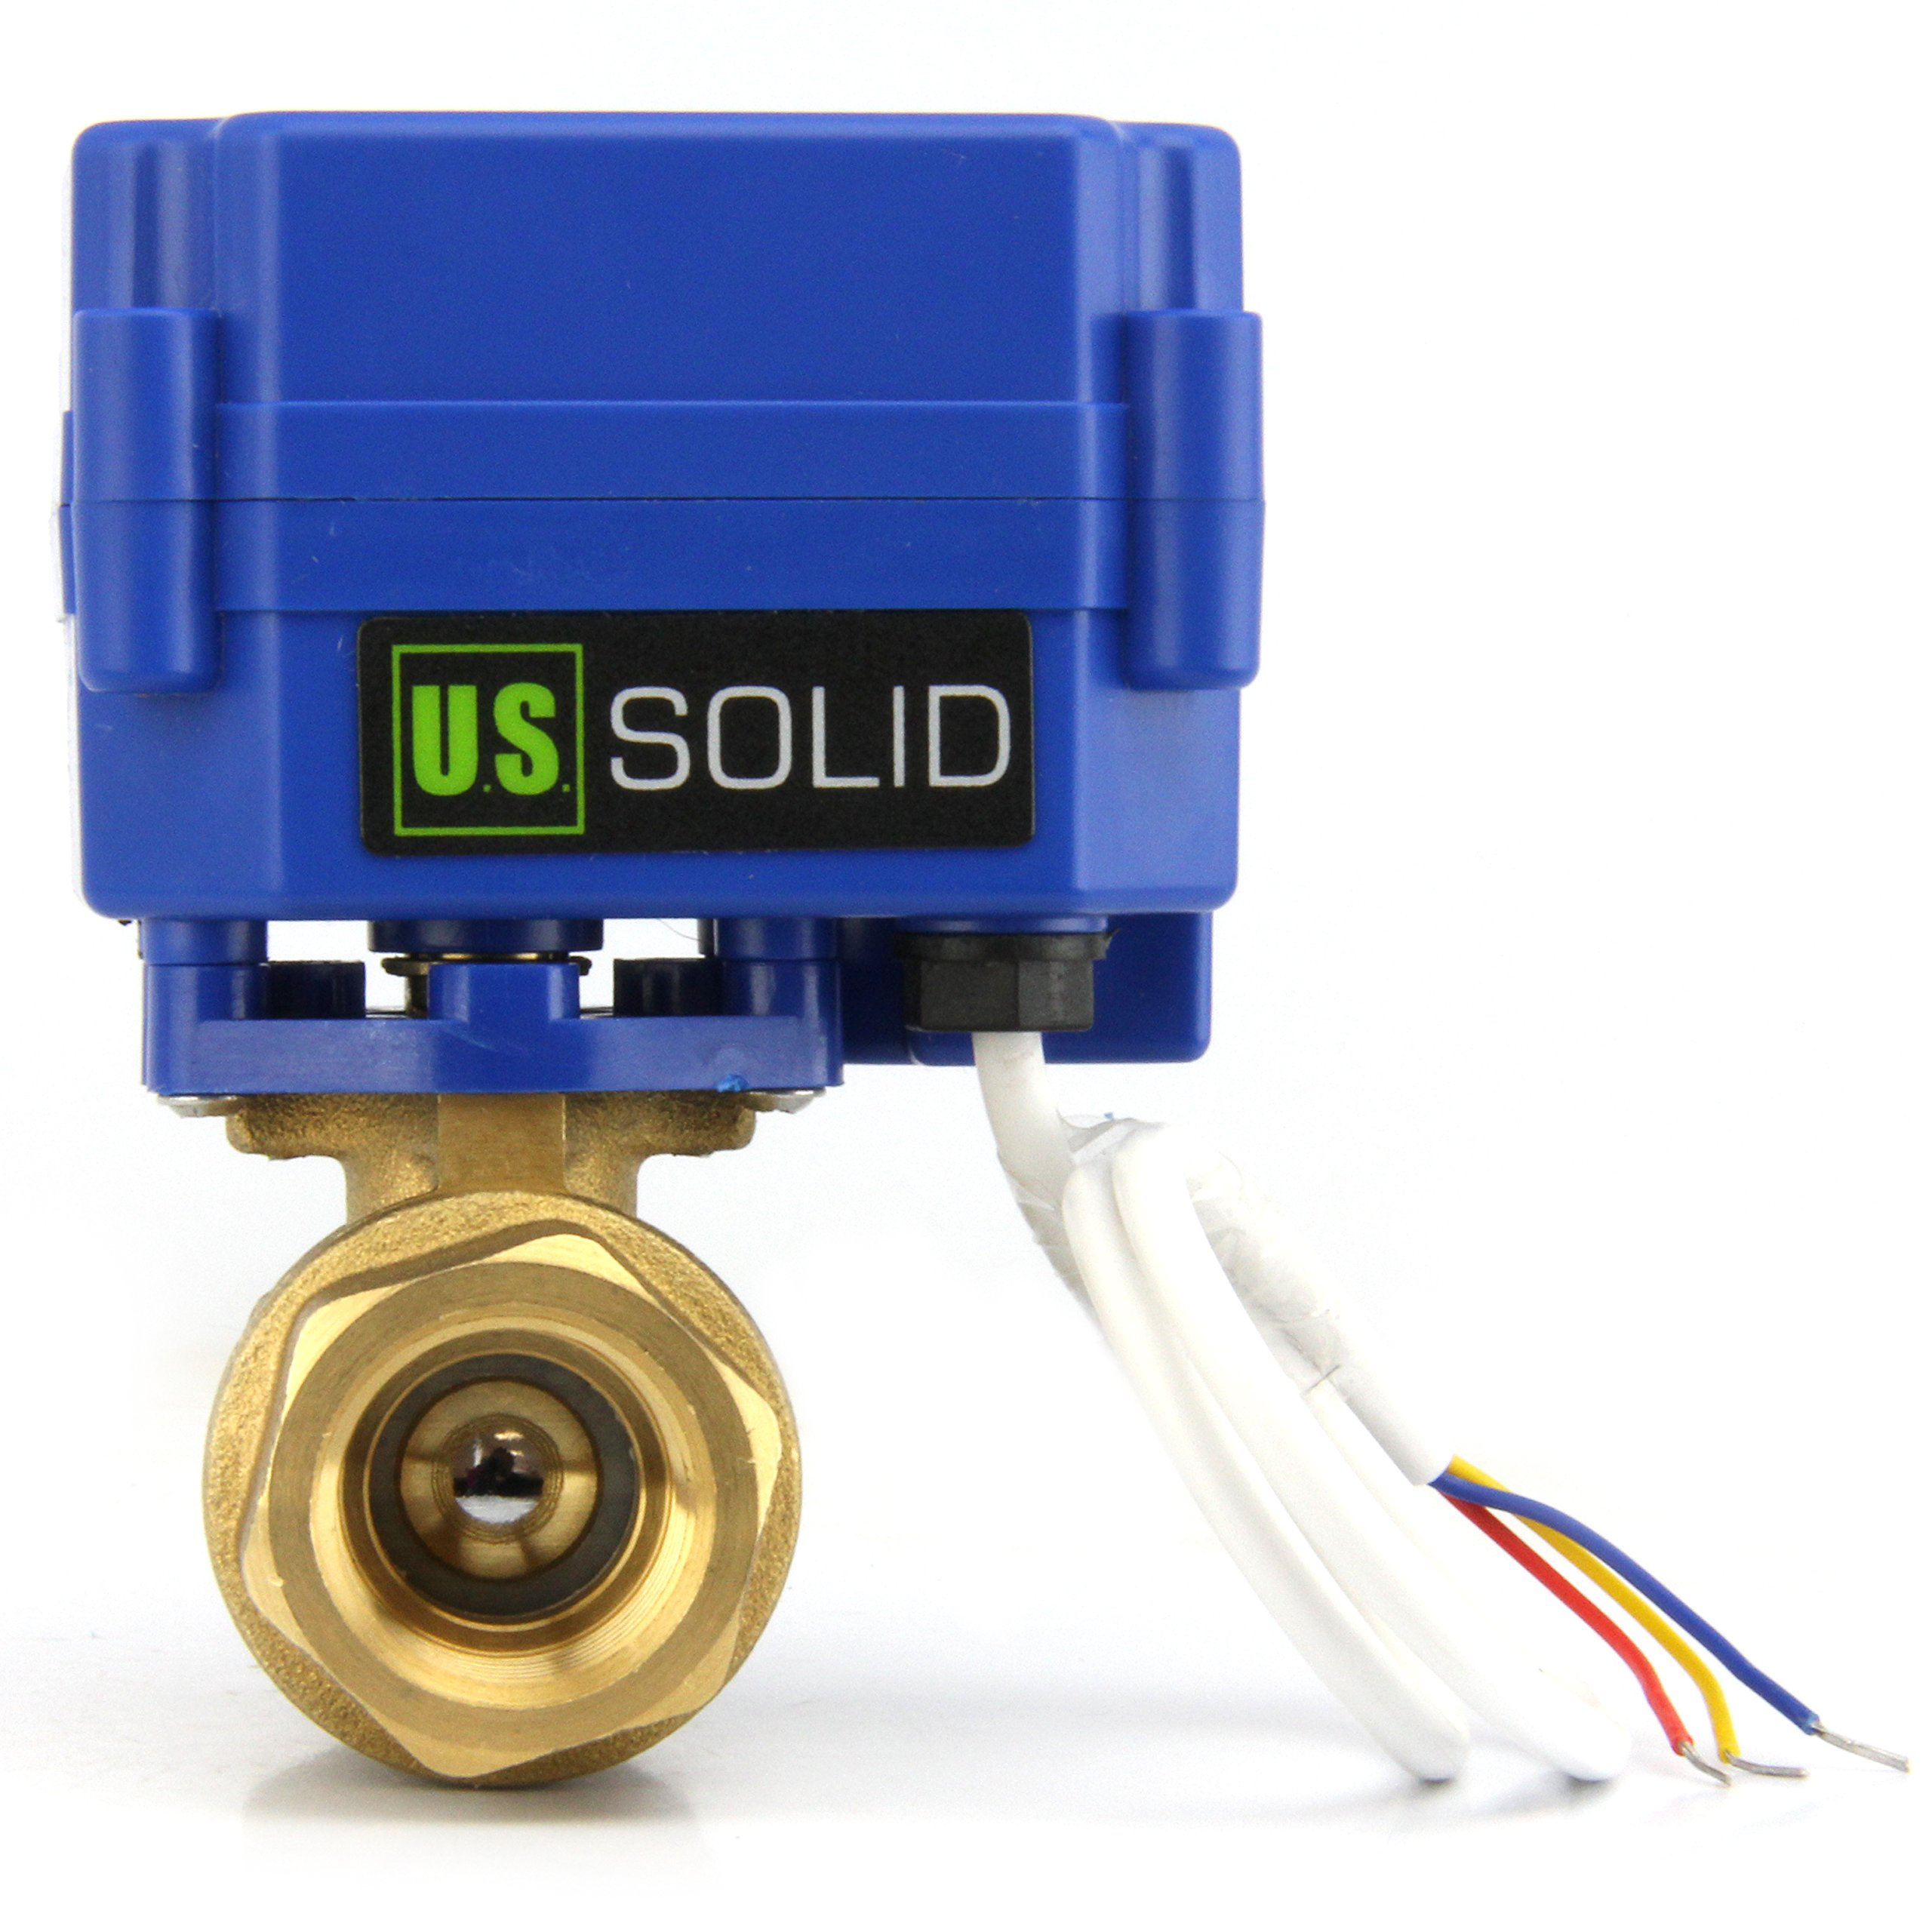 Motorized Ball Valve- 1'' Brass Electrical Ball Valve with Standard Port, 9-24V AC/DC and 3 Wire Setup by U.S. Solid …